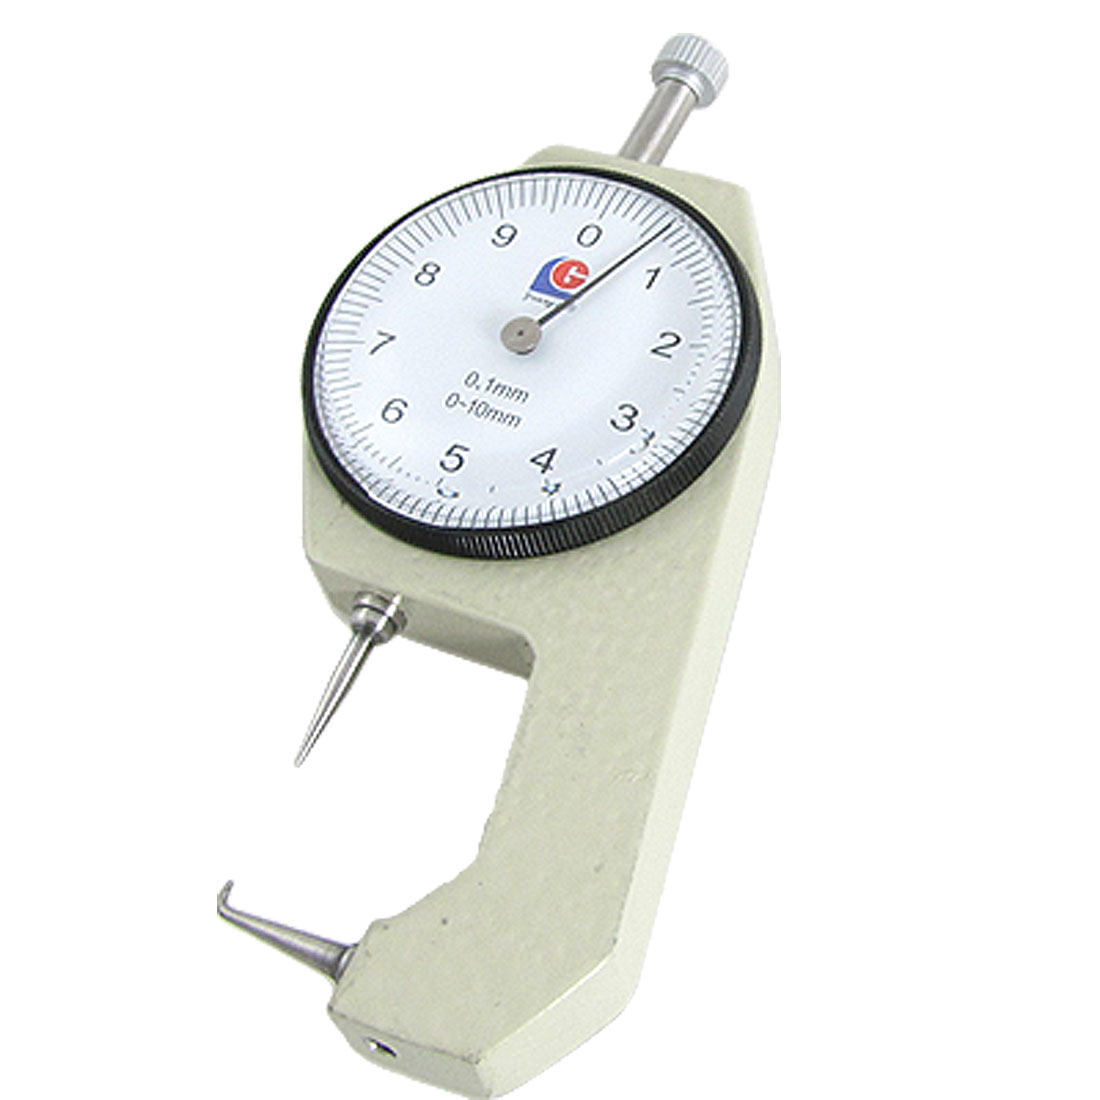 Measuring 0-10mm x 0.1mm Mini Dial Thickness Gauge Tool